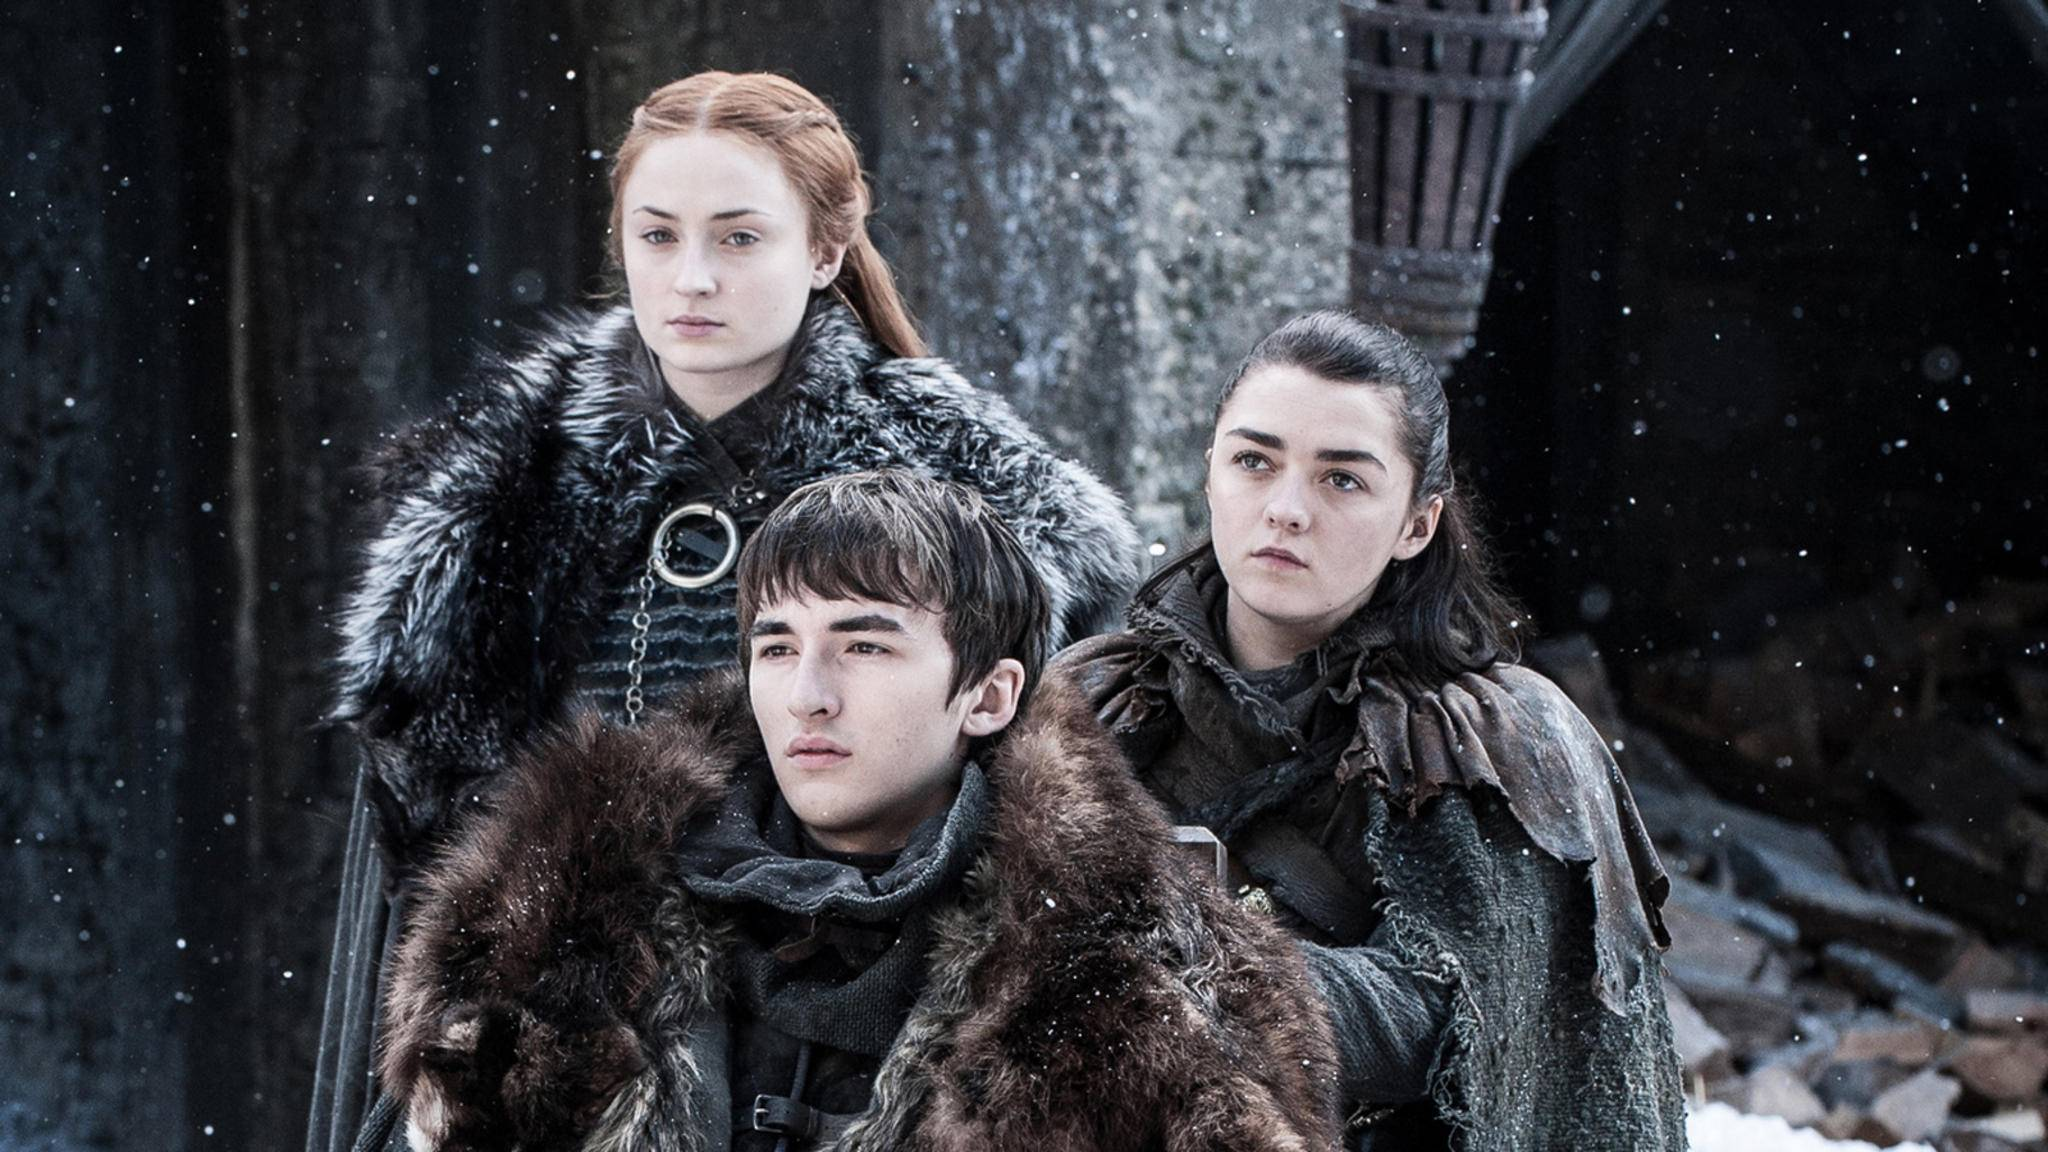 Game of Thrones: So viel verdienen die Stars pro Episode